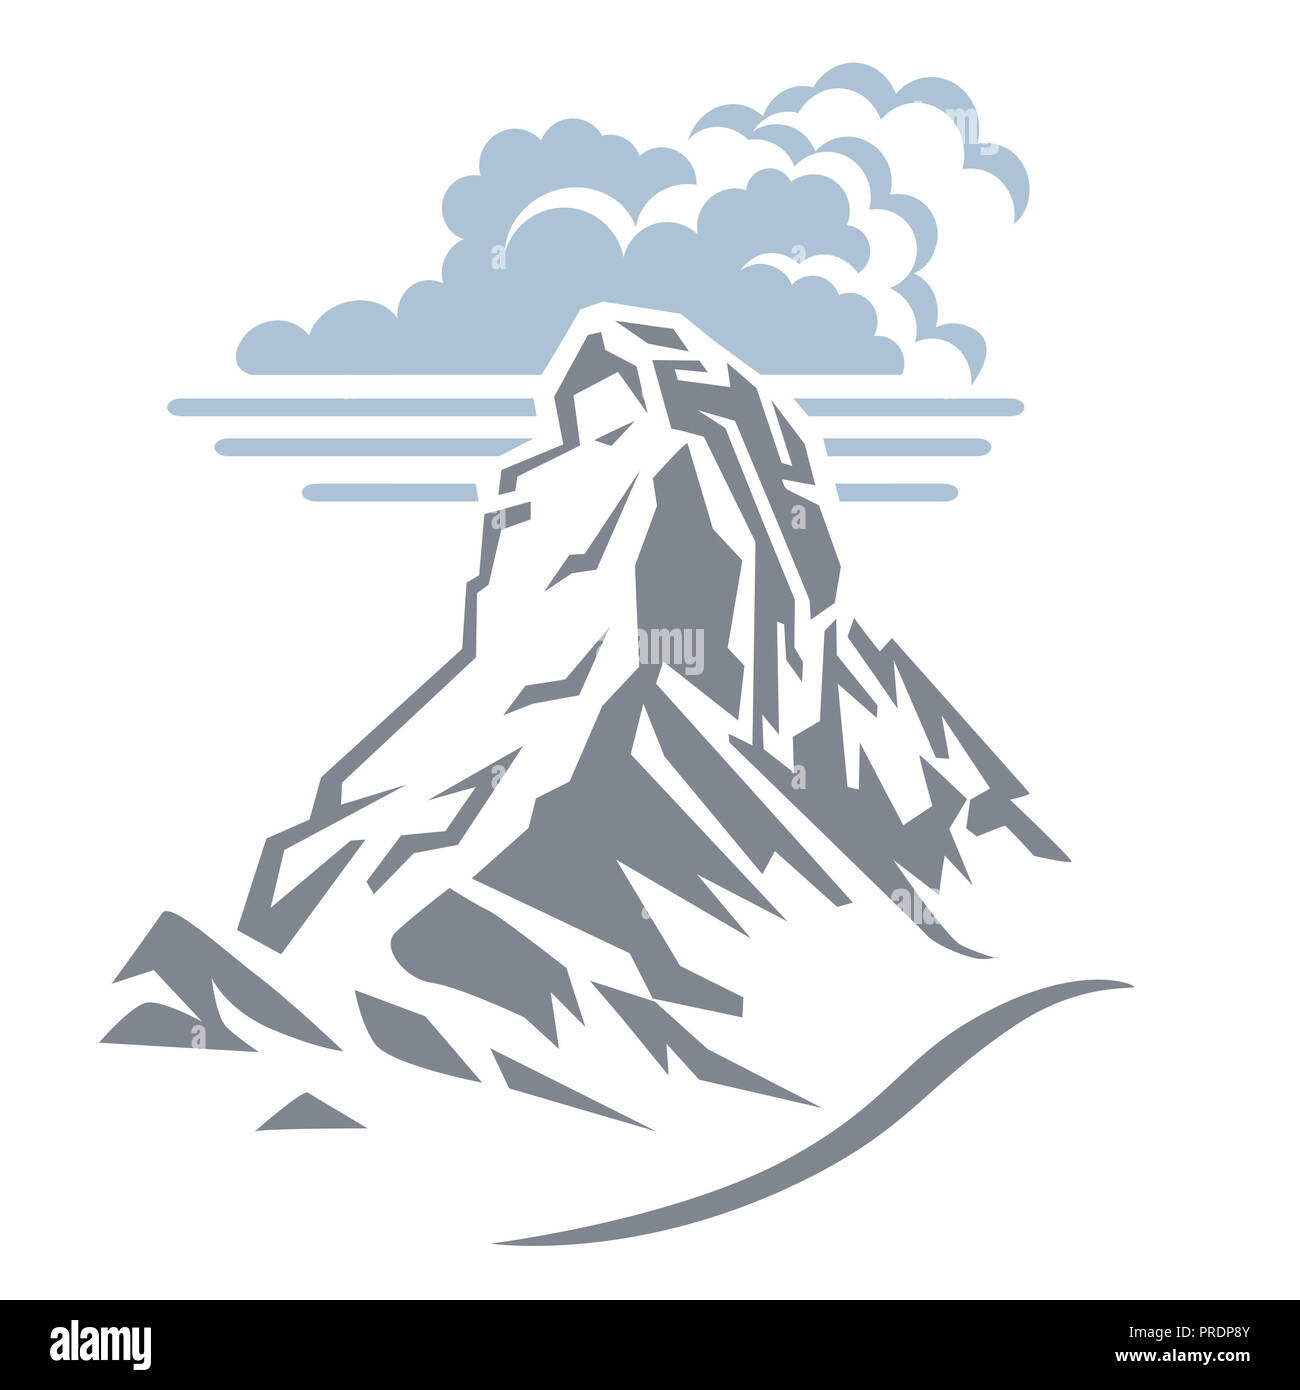 Clouds over mountain peak - Stock Image